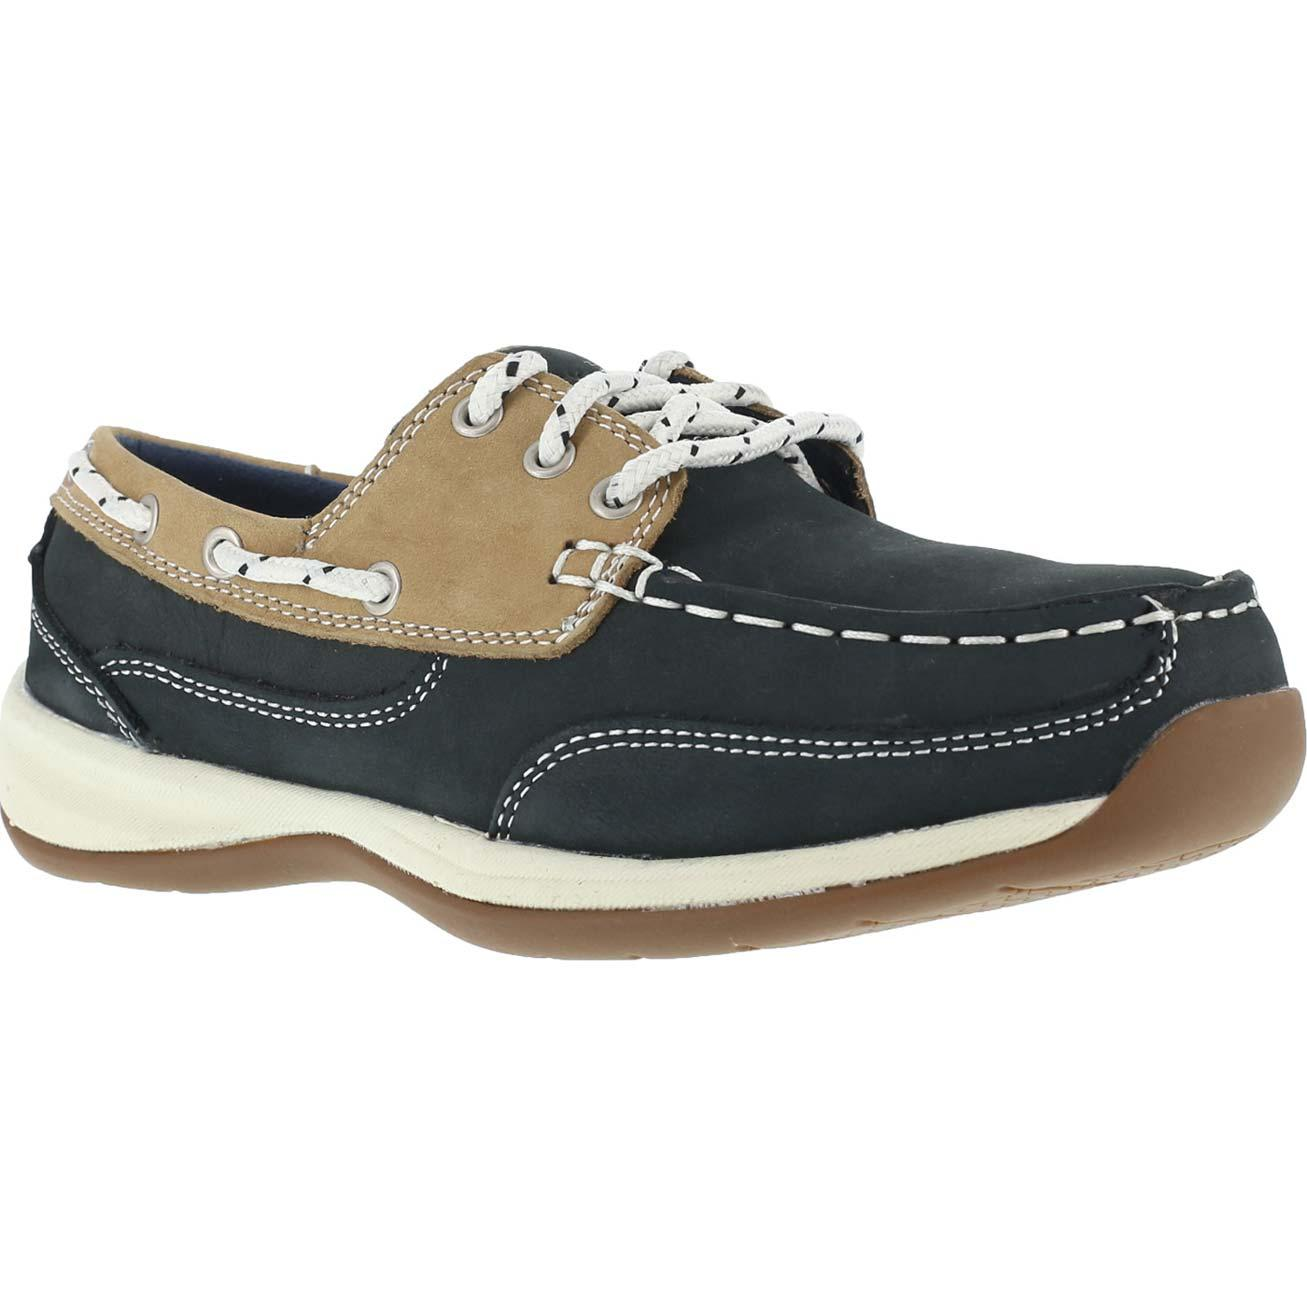 Rockport Womens Work Shoes